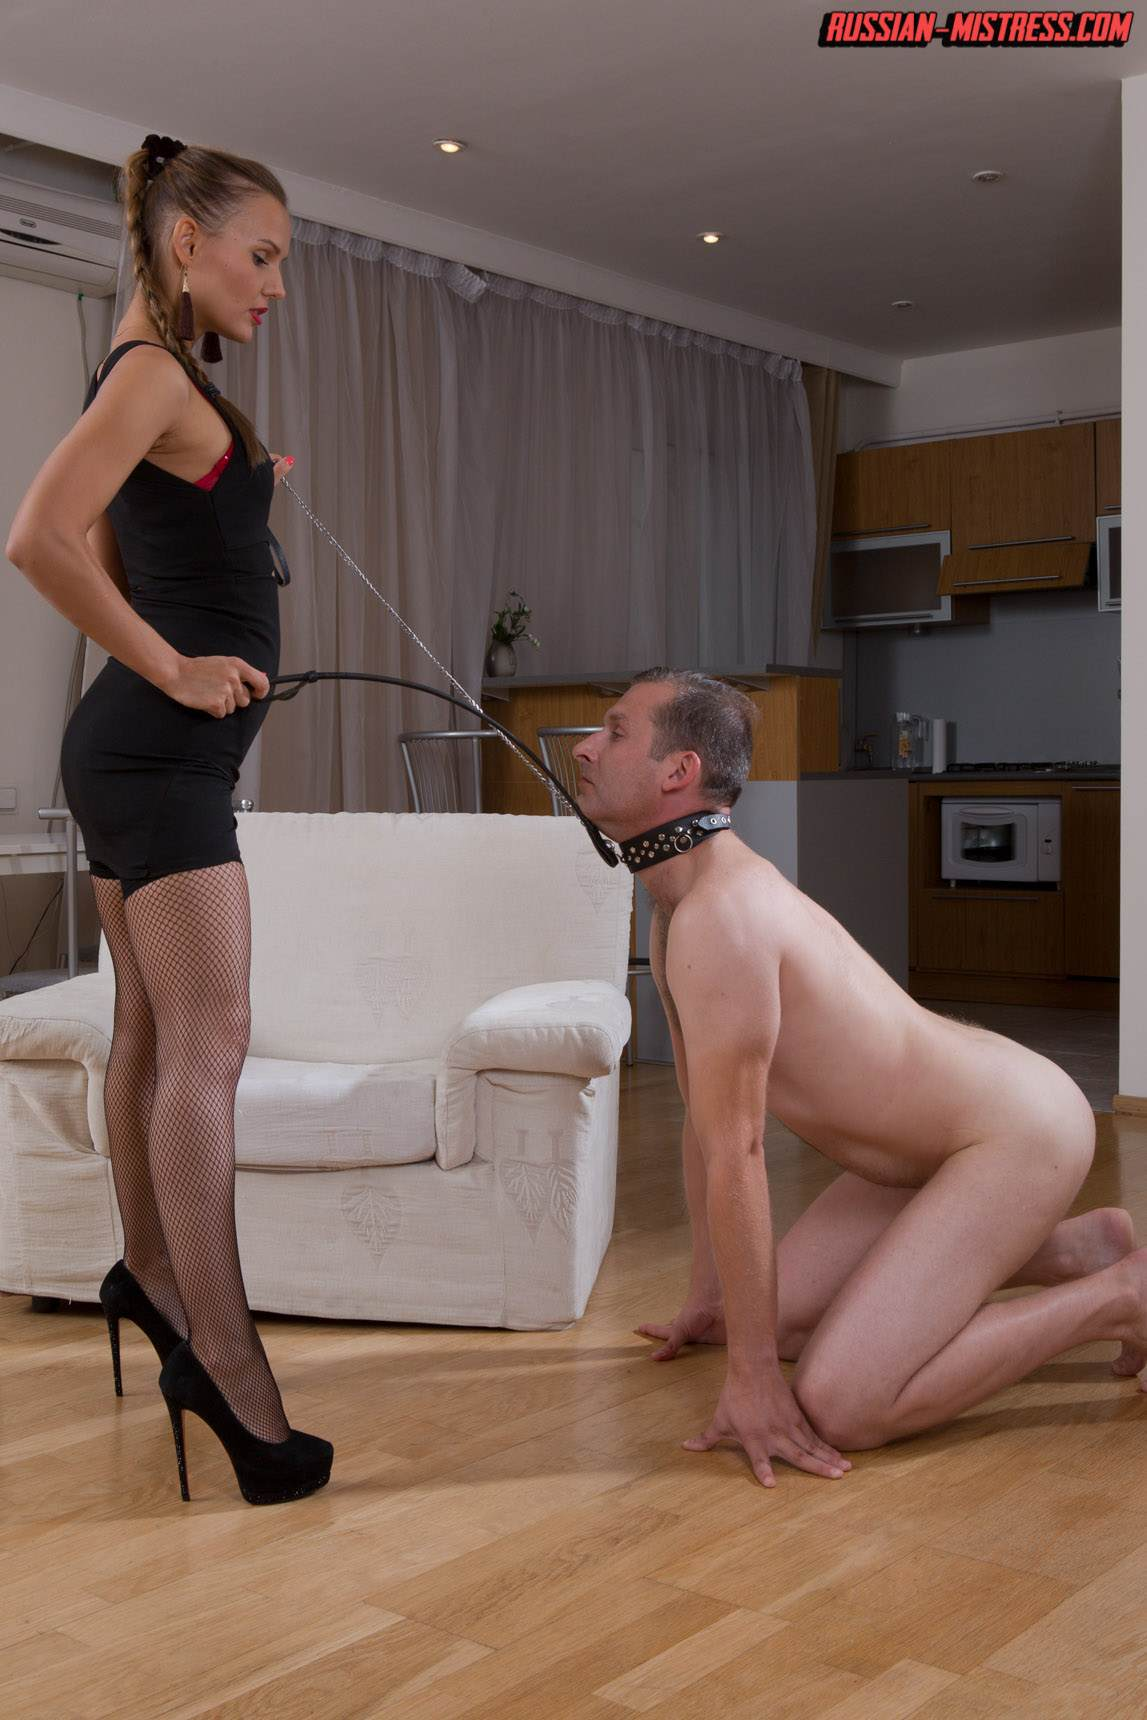 Picture #2 of Mistress is keeping slave motivated for legs worship with harsh whip lashes and then rewards him with deep anal strap-on penetration